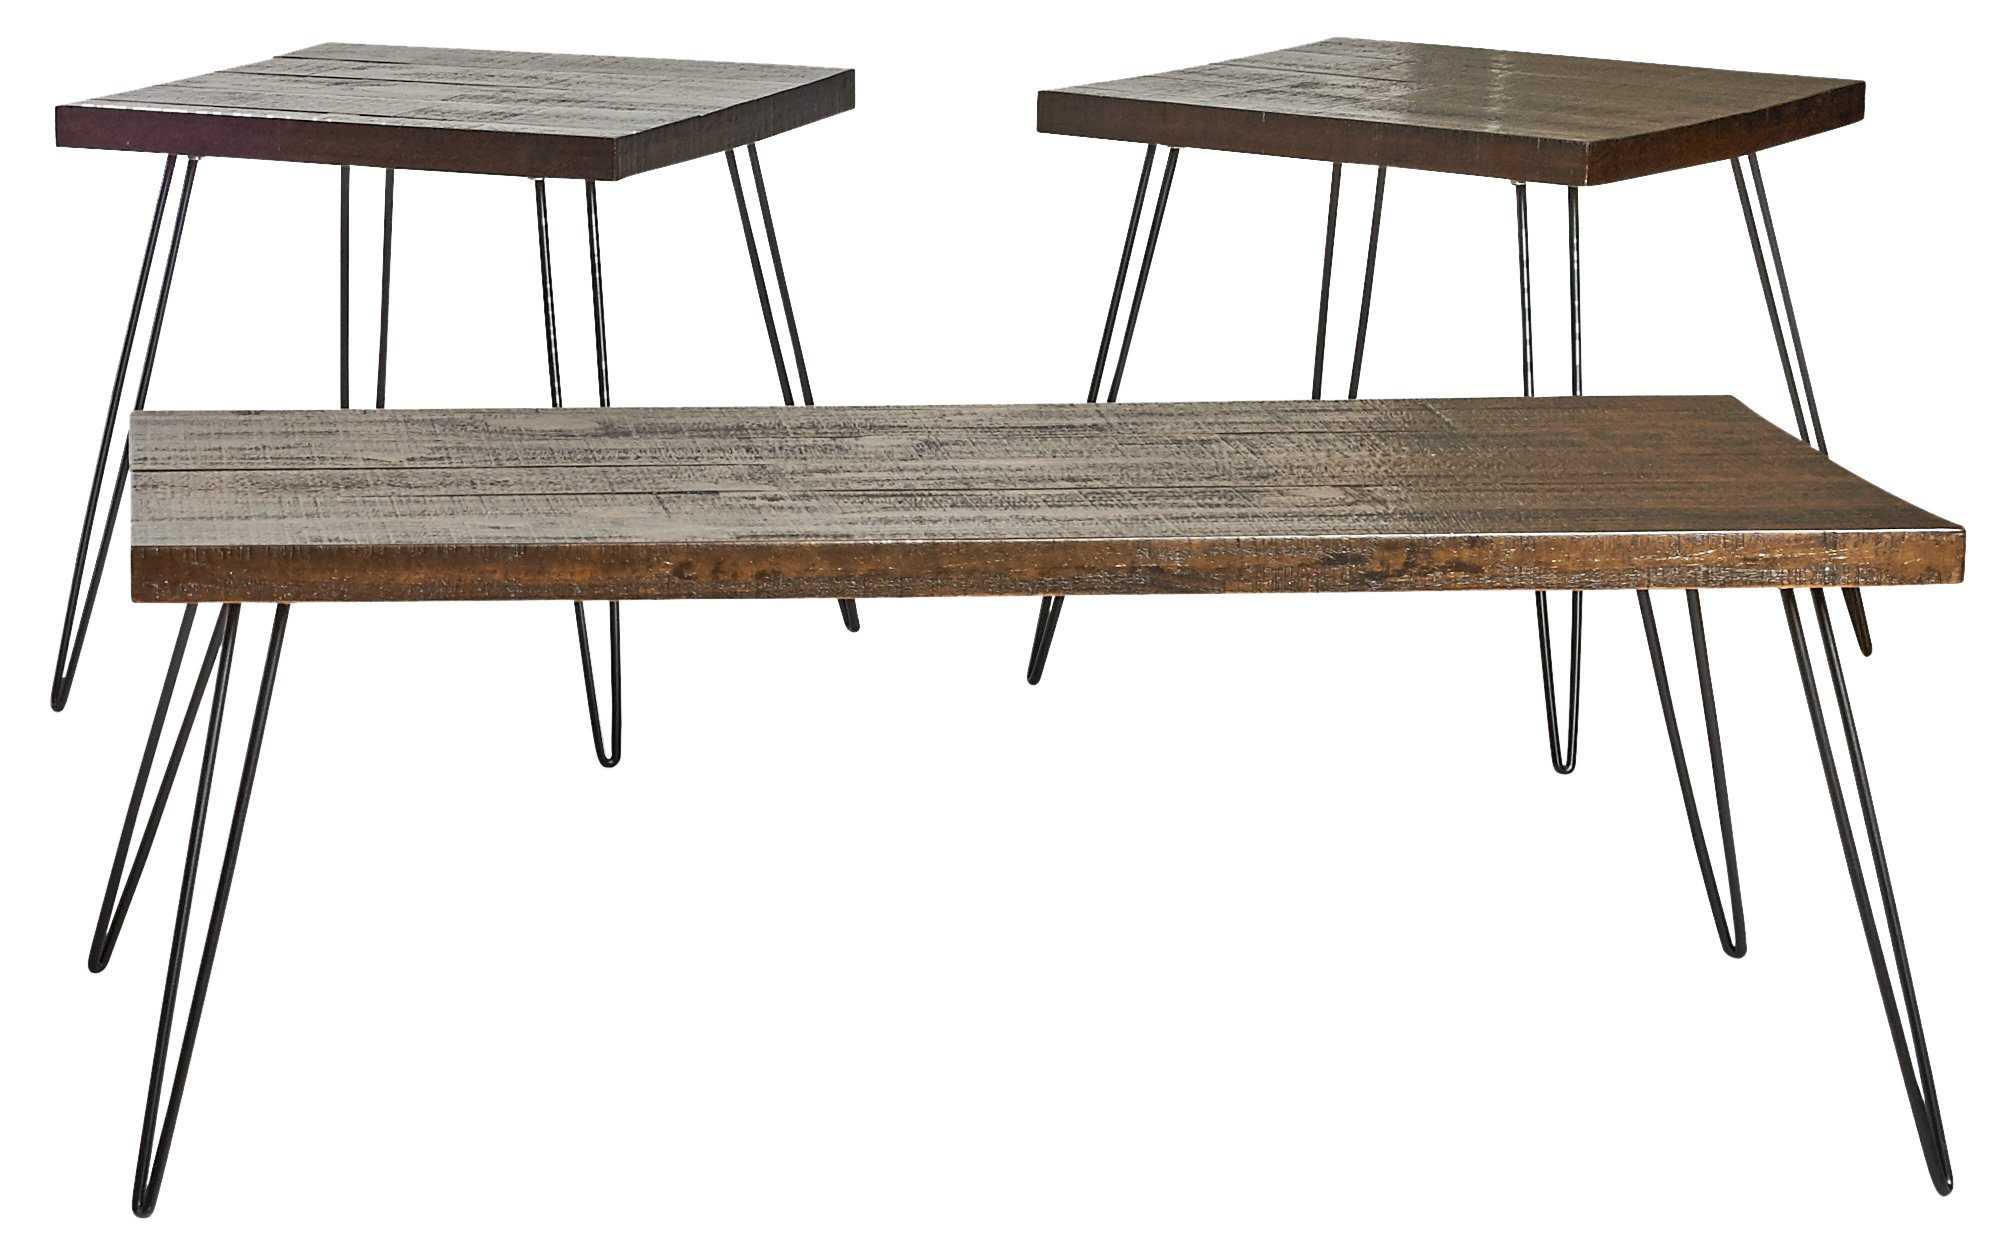 Belmont Home Reclaimed Wood and Metal Tables (Set of 3)